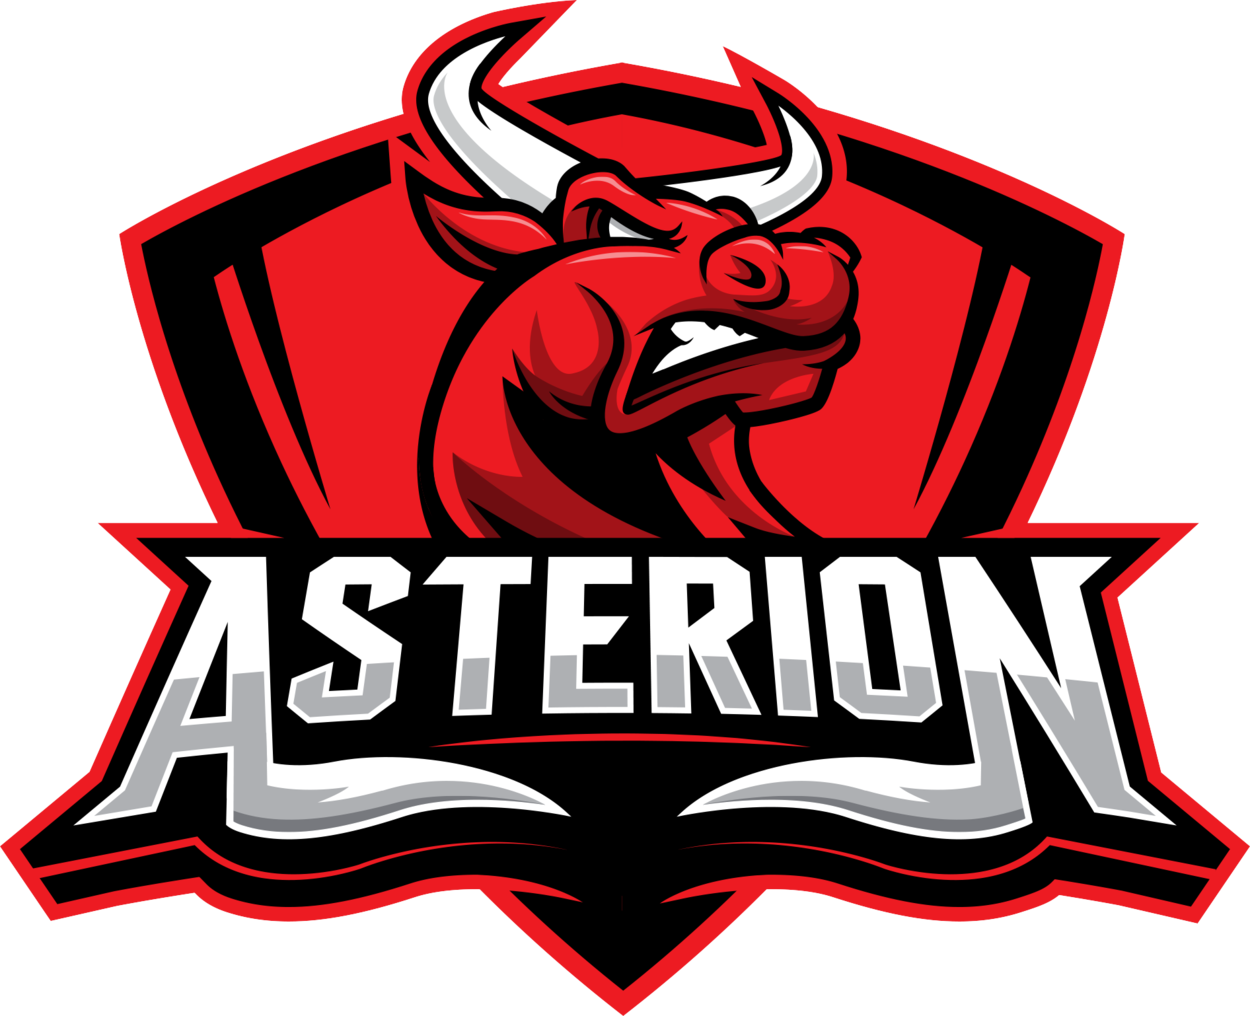 Asterion Academy